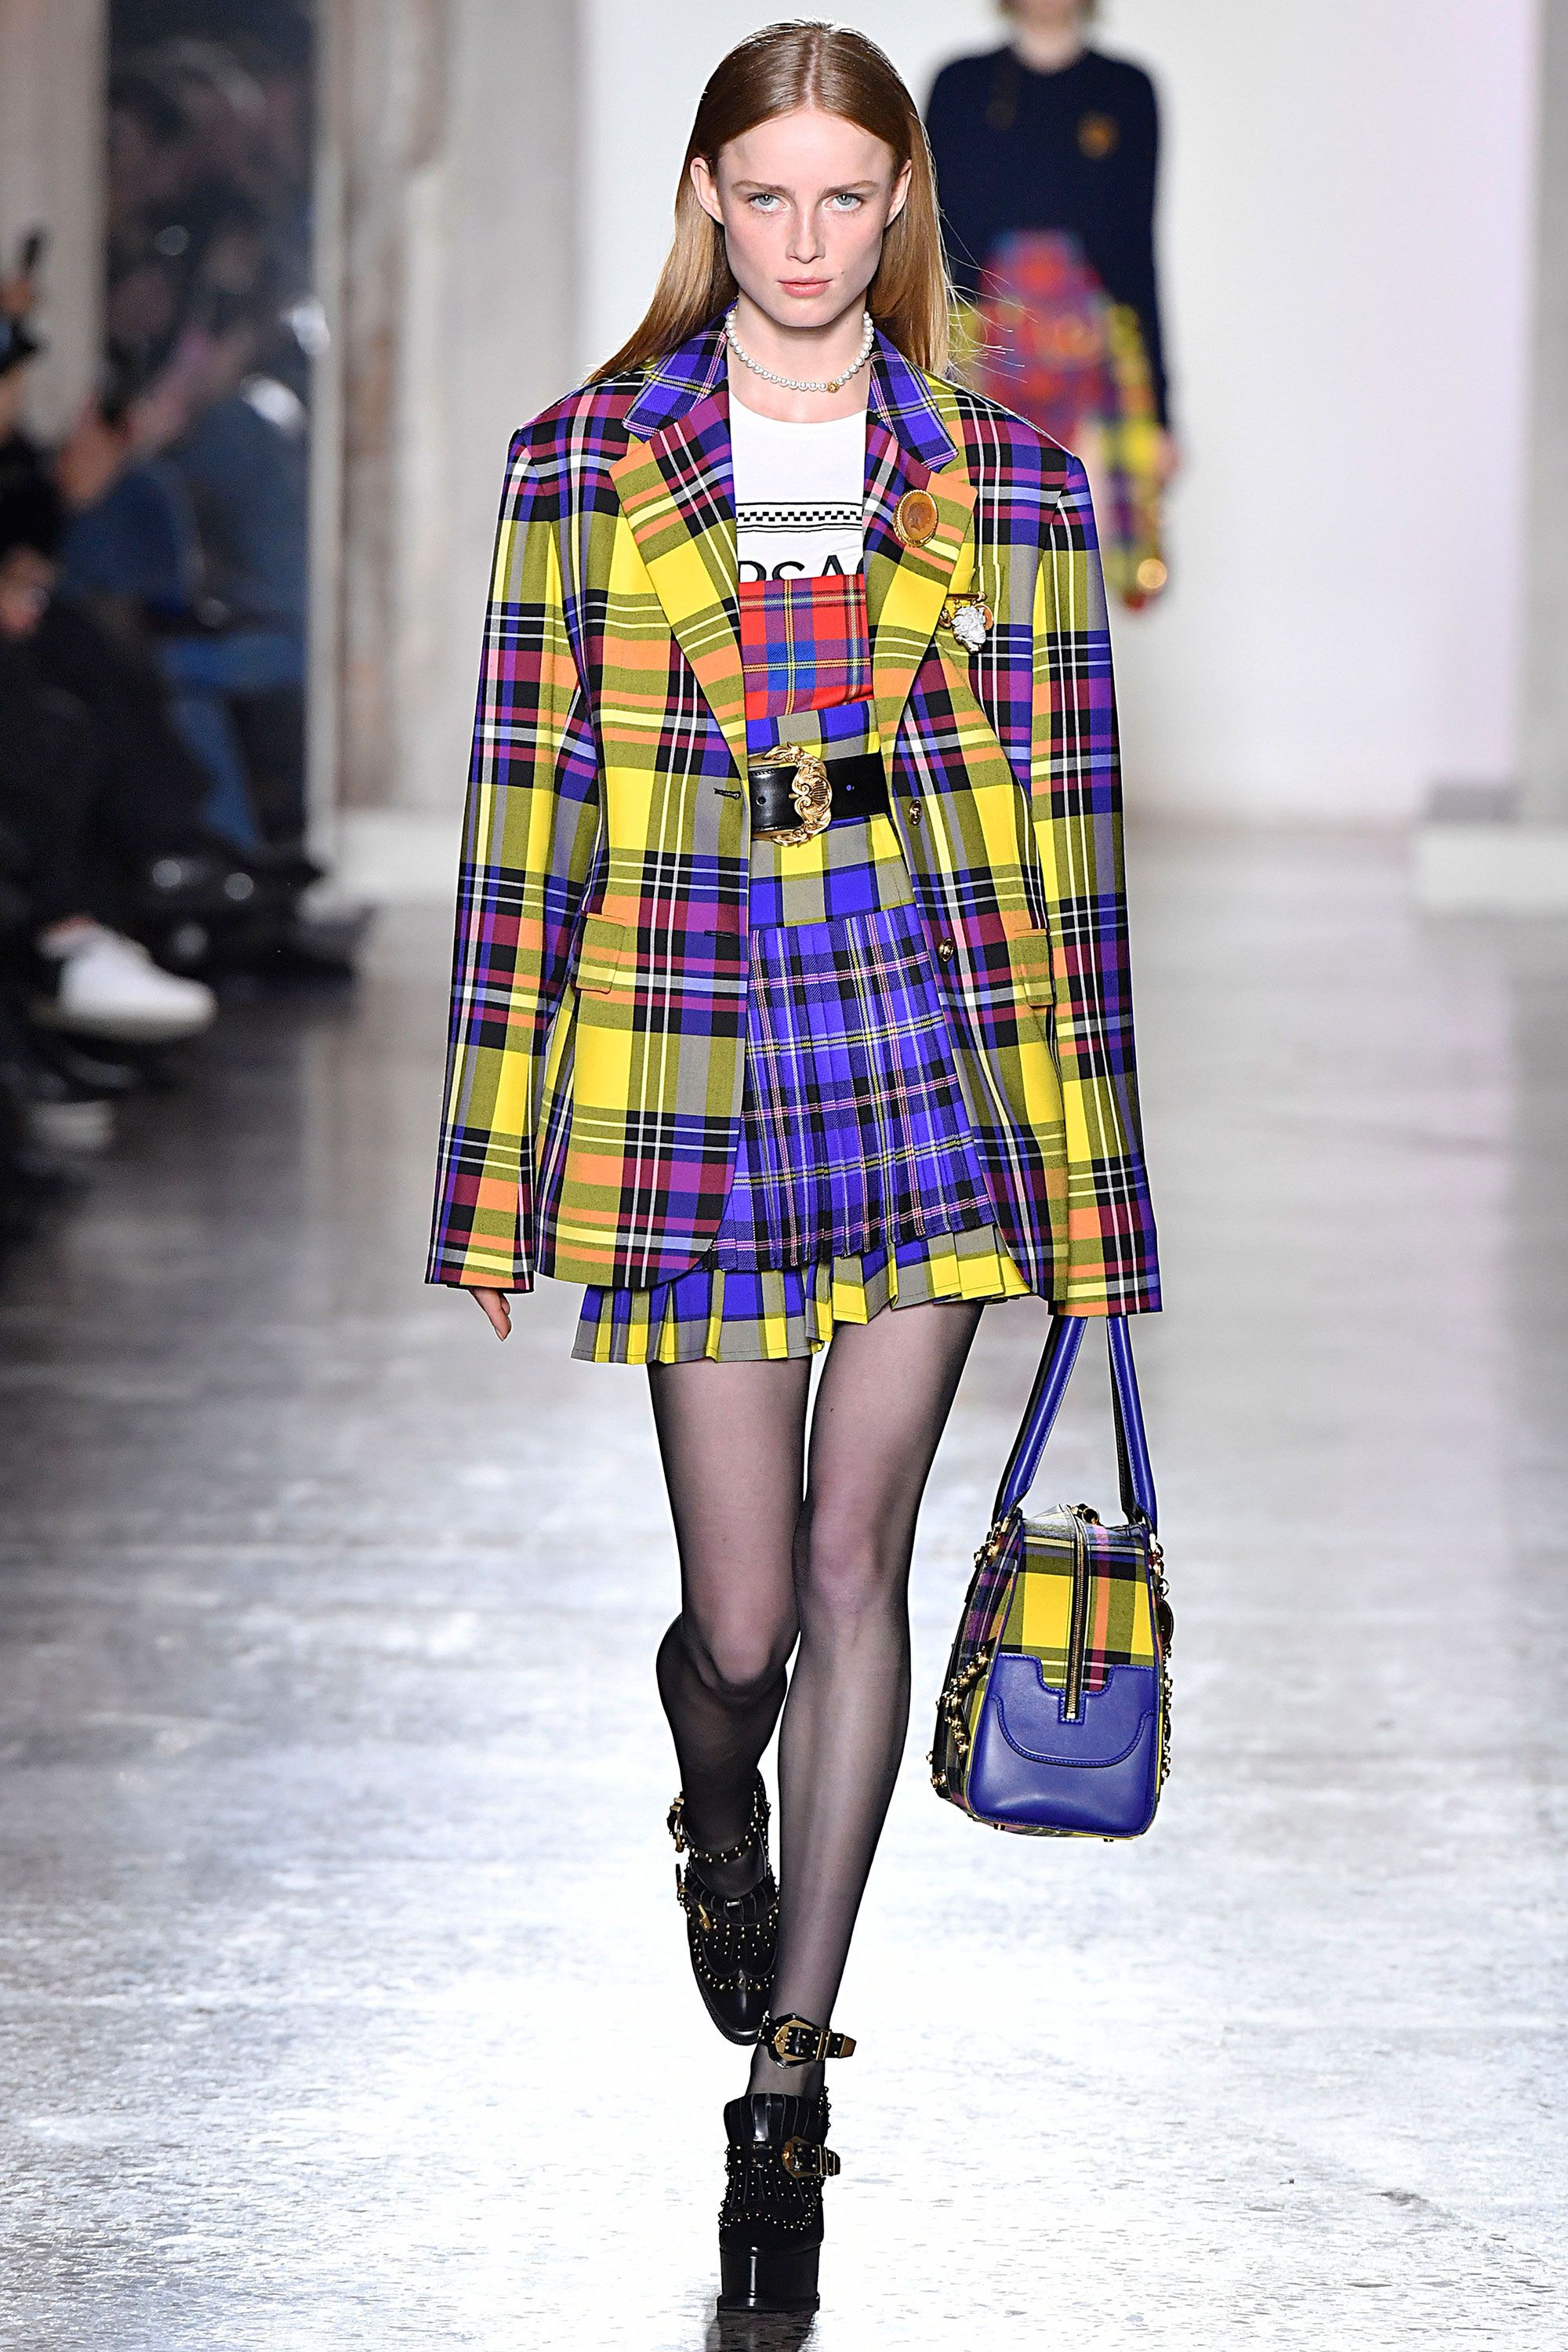 Fashion Trendsfall trend plaid forecast to wear in autumn in 2019